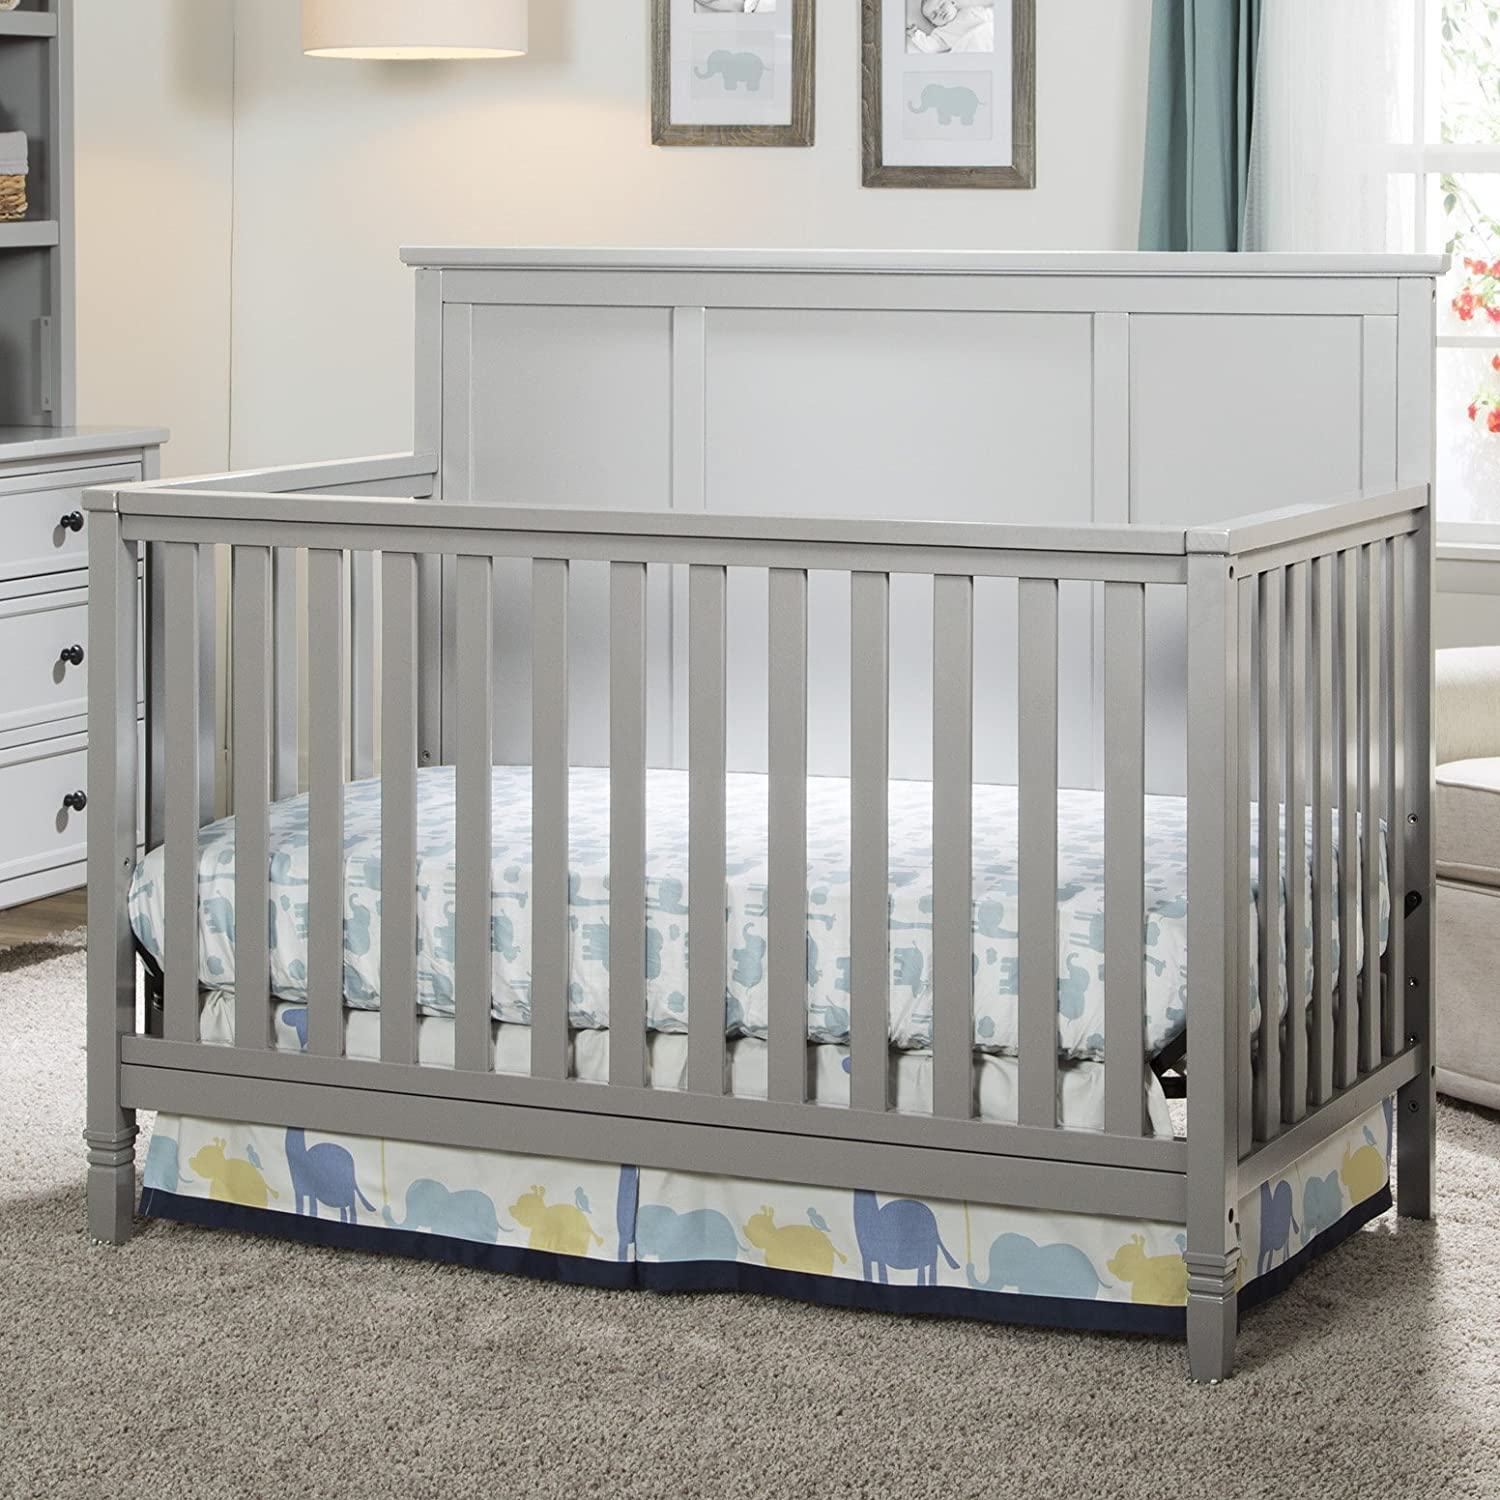 wide children mixture of bed timeless create baby silhouette delta airy sleigh on and convertible pinterest best clermont making solid a from images yet features feel style crib cribs slats deltachildren nurseries skinny to